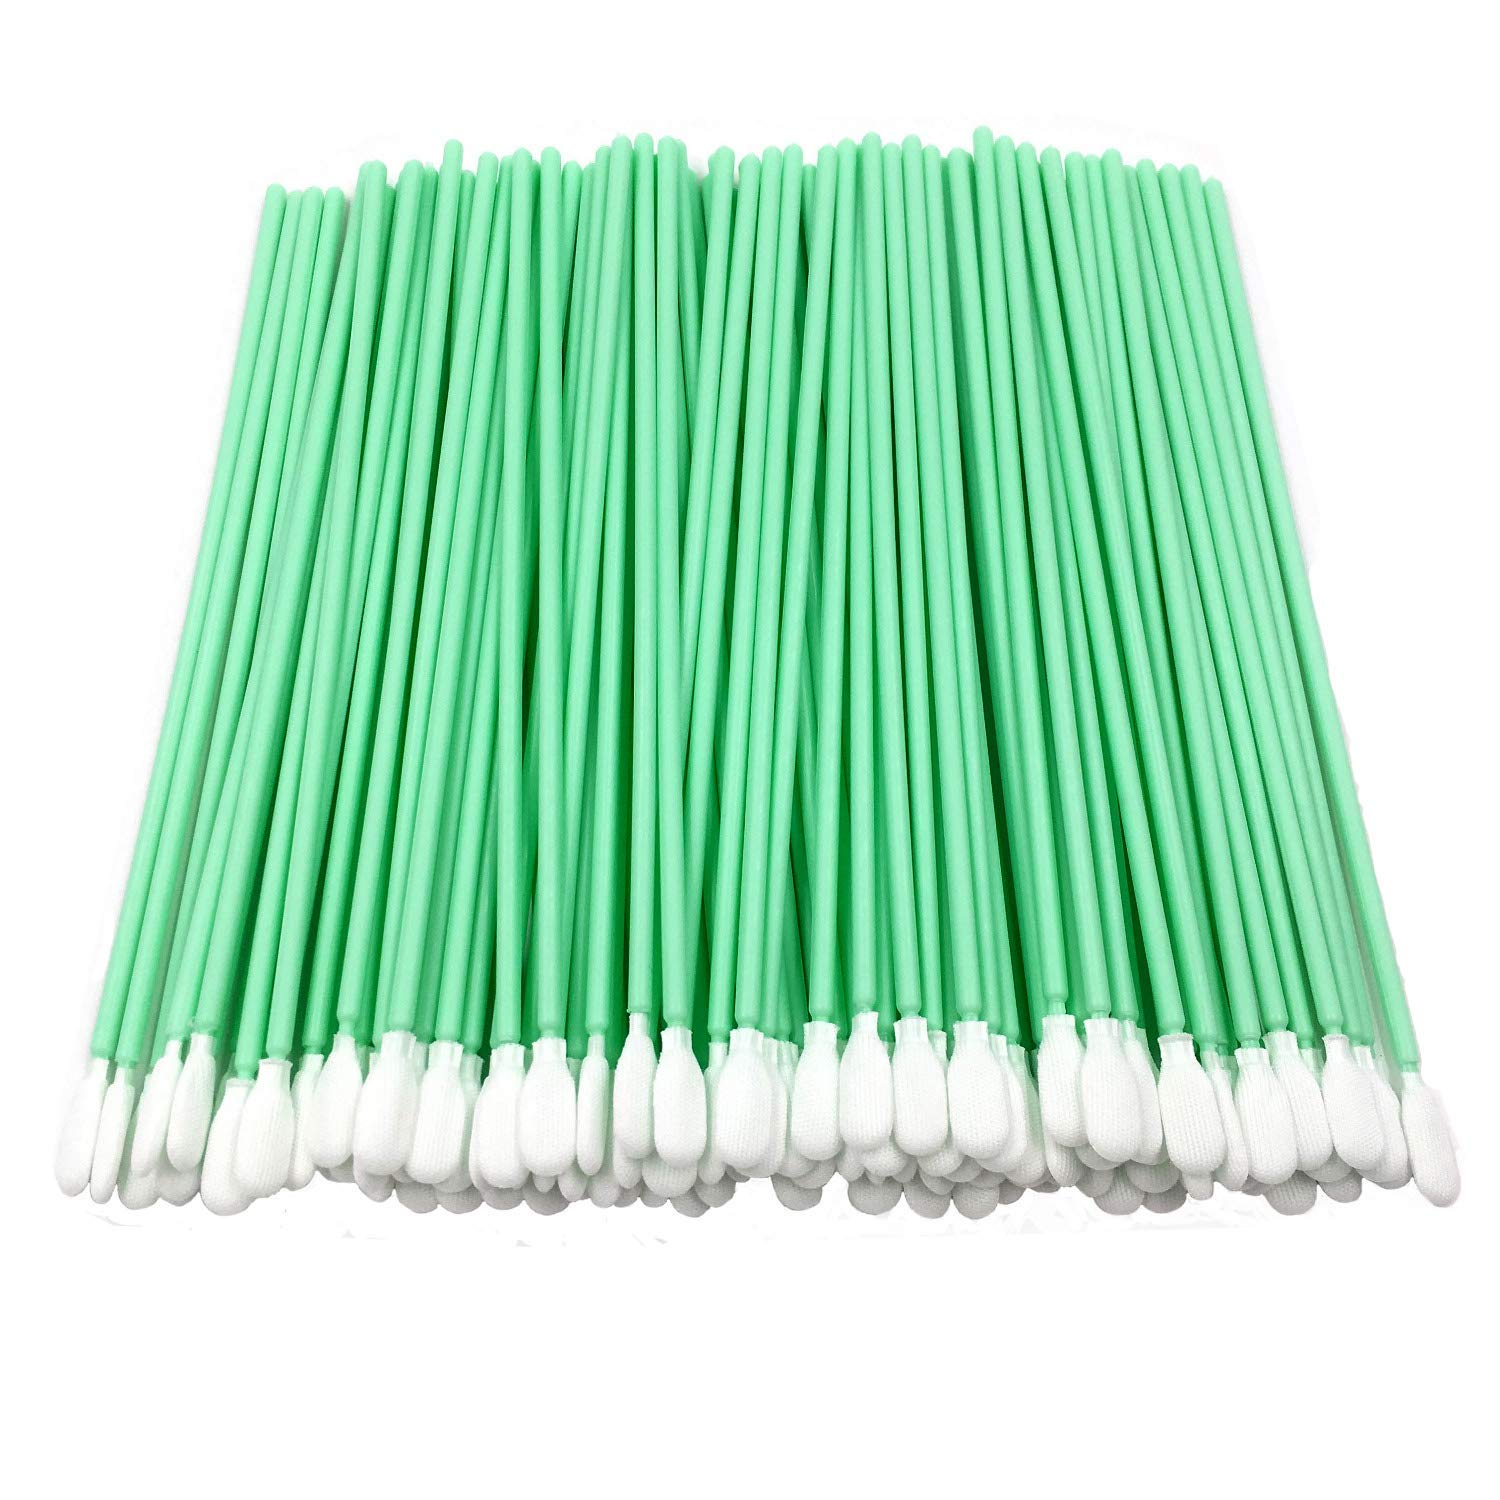 100pcs 6.45'' Cleanroom Polyester Swab with Flexible Head Knitted Polyester Cleaning for Gun Optical Lens/PCB/BGA/Electronics/Semiconductor Instrument and Medical Industry CK-PS761 (100) by cleansky